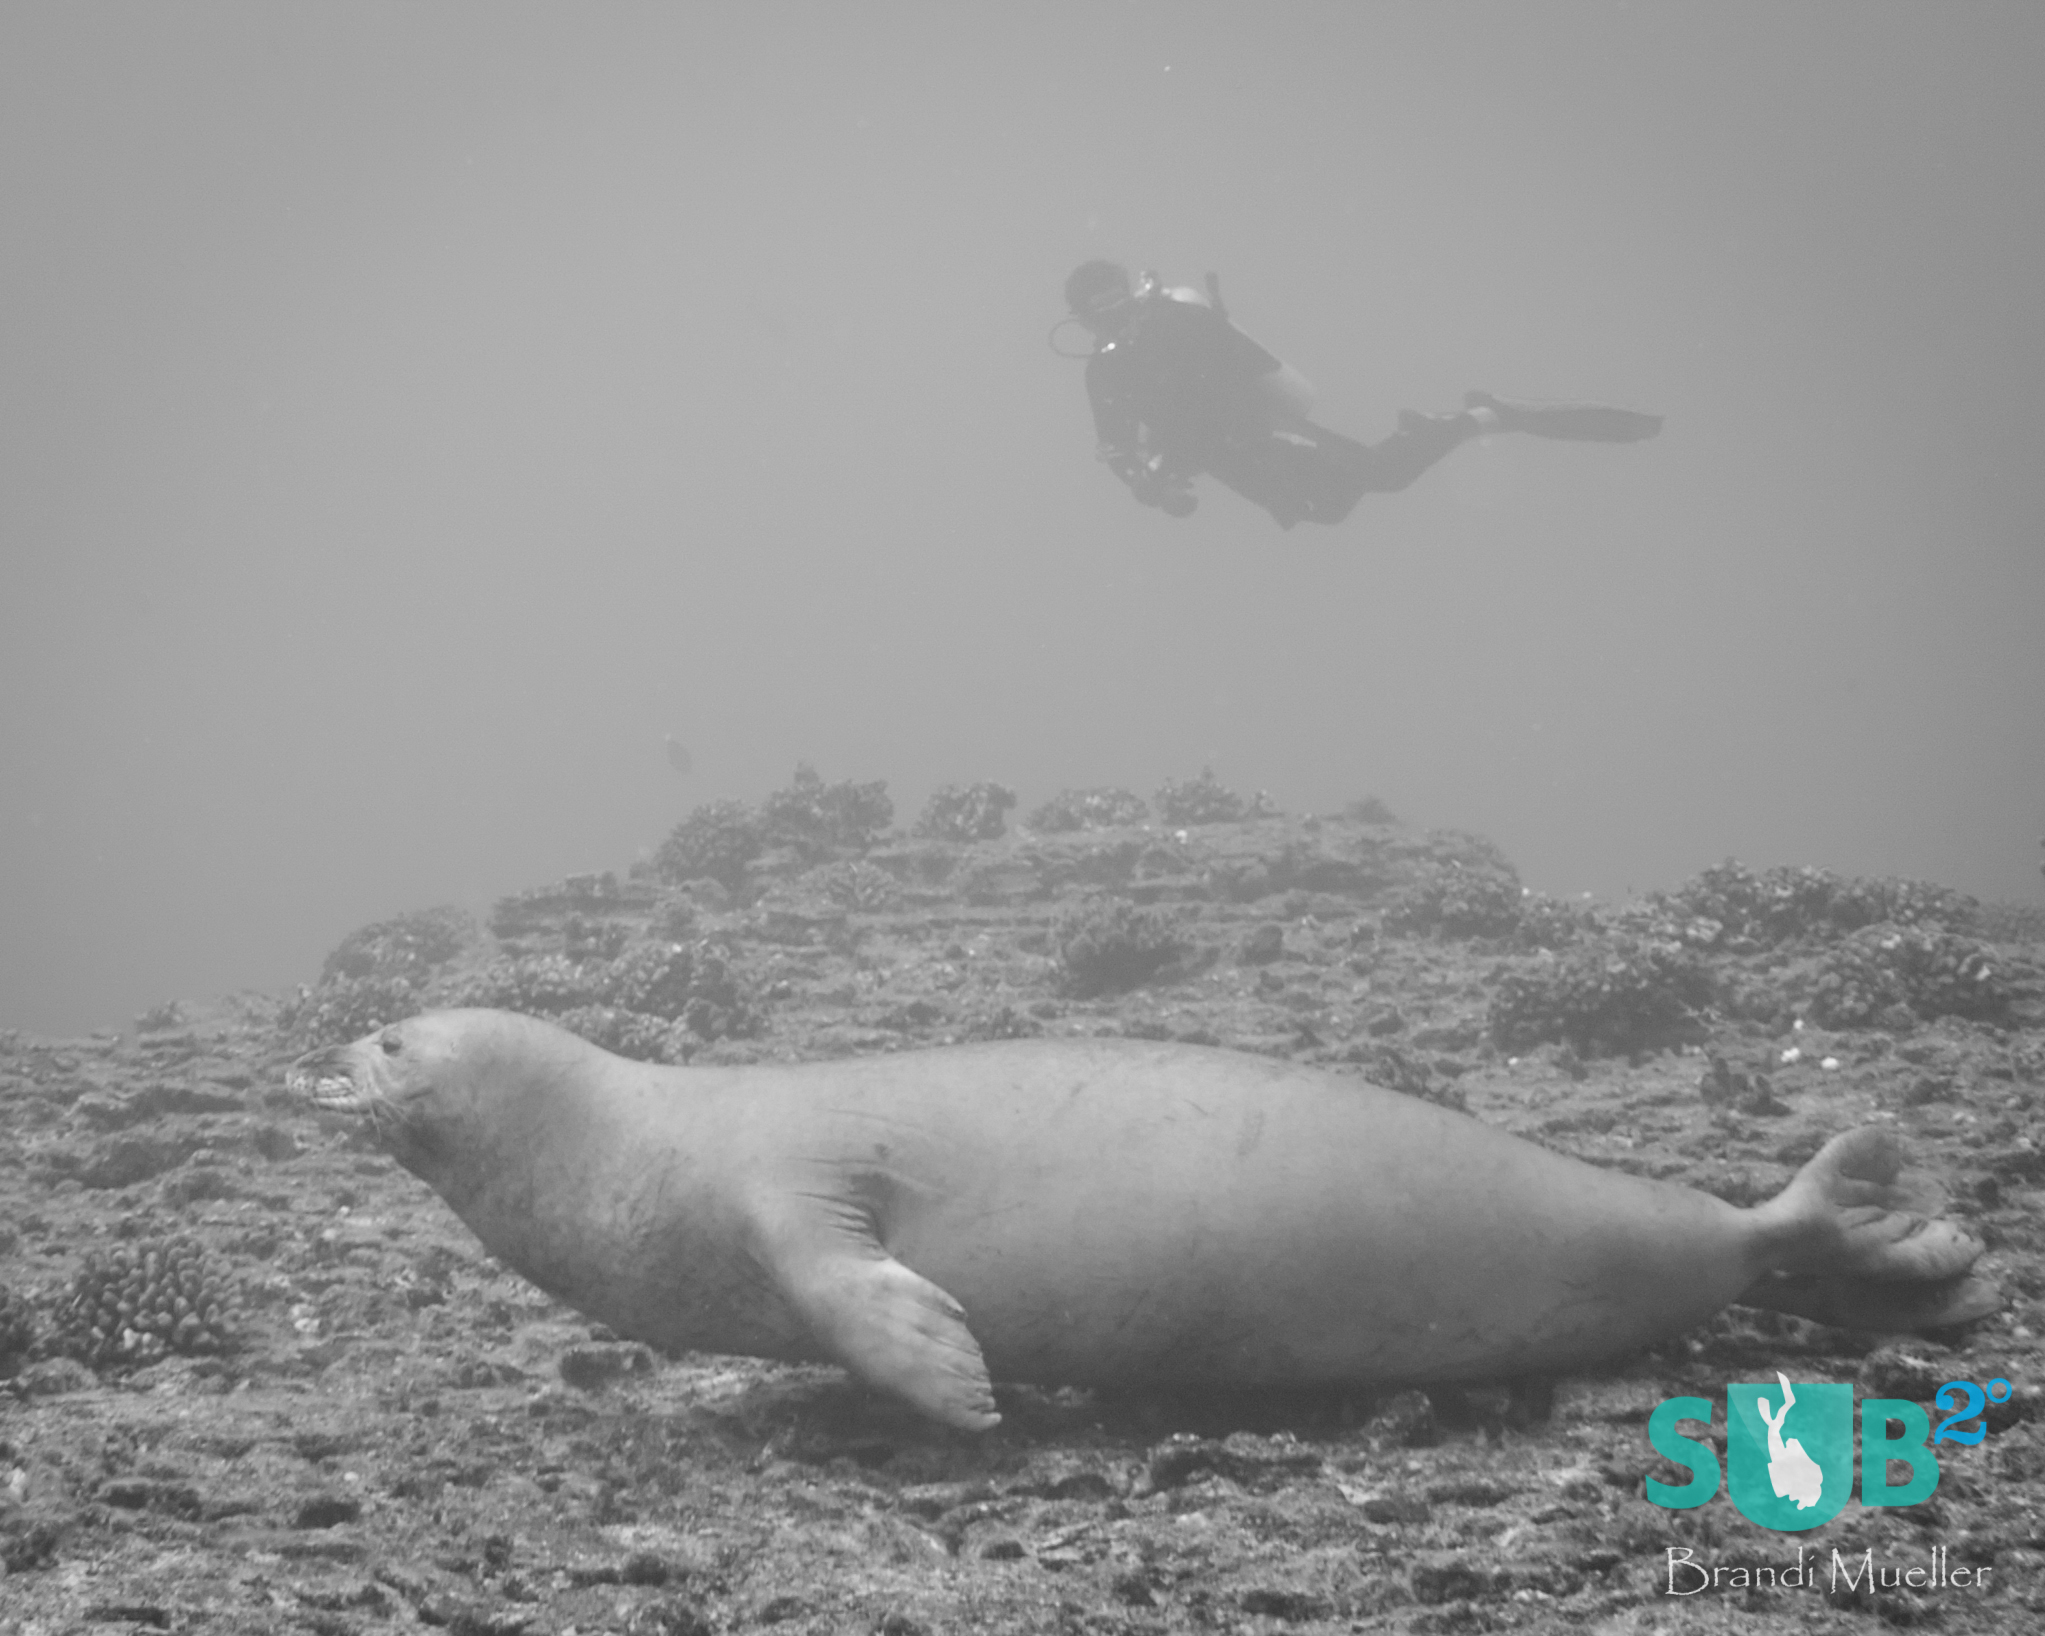 A diver gets a glimpse of an endangered Hawaiian monk seal.